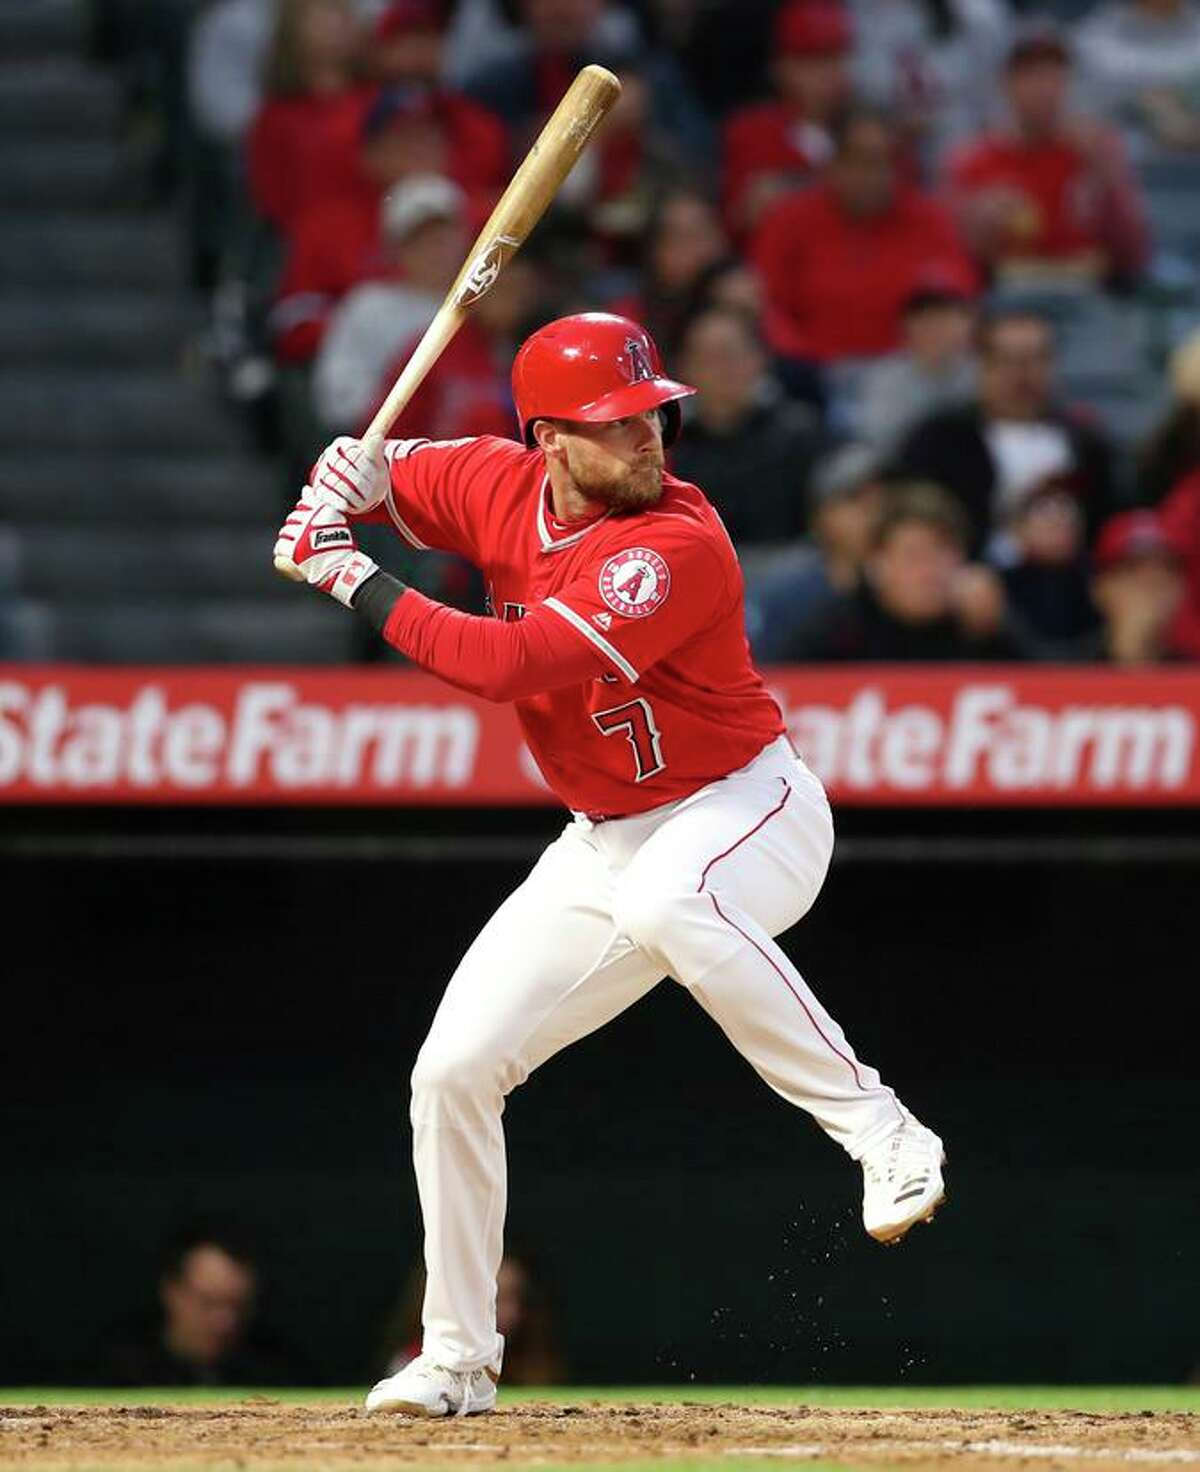 Zack Cozart hit .190 in two seasons with the Angels after signing a three-year contract.